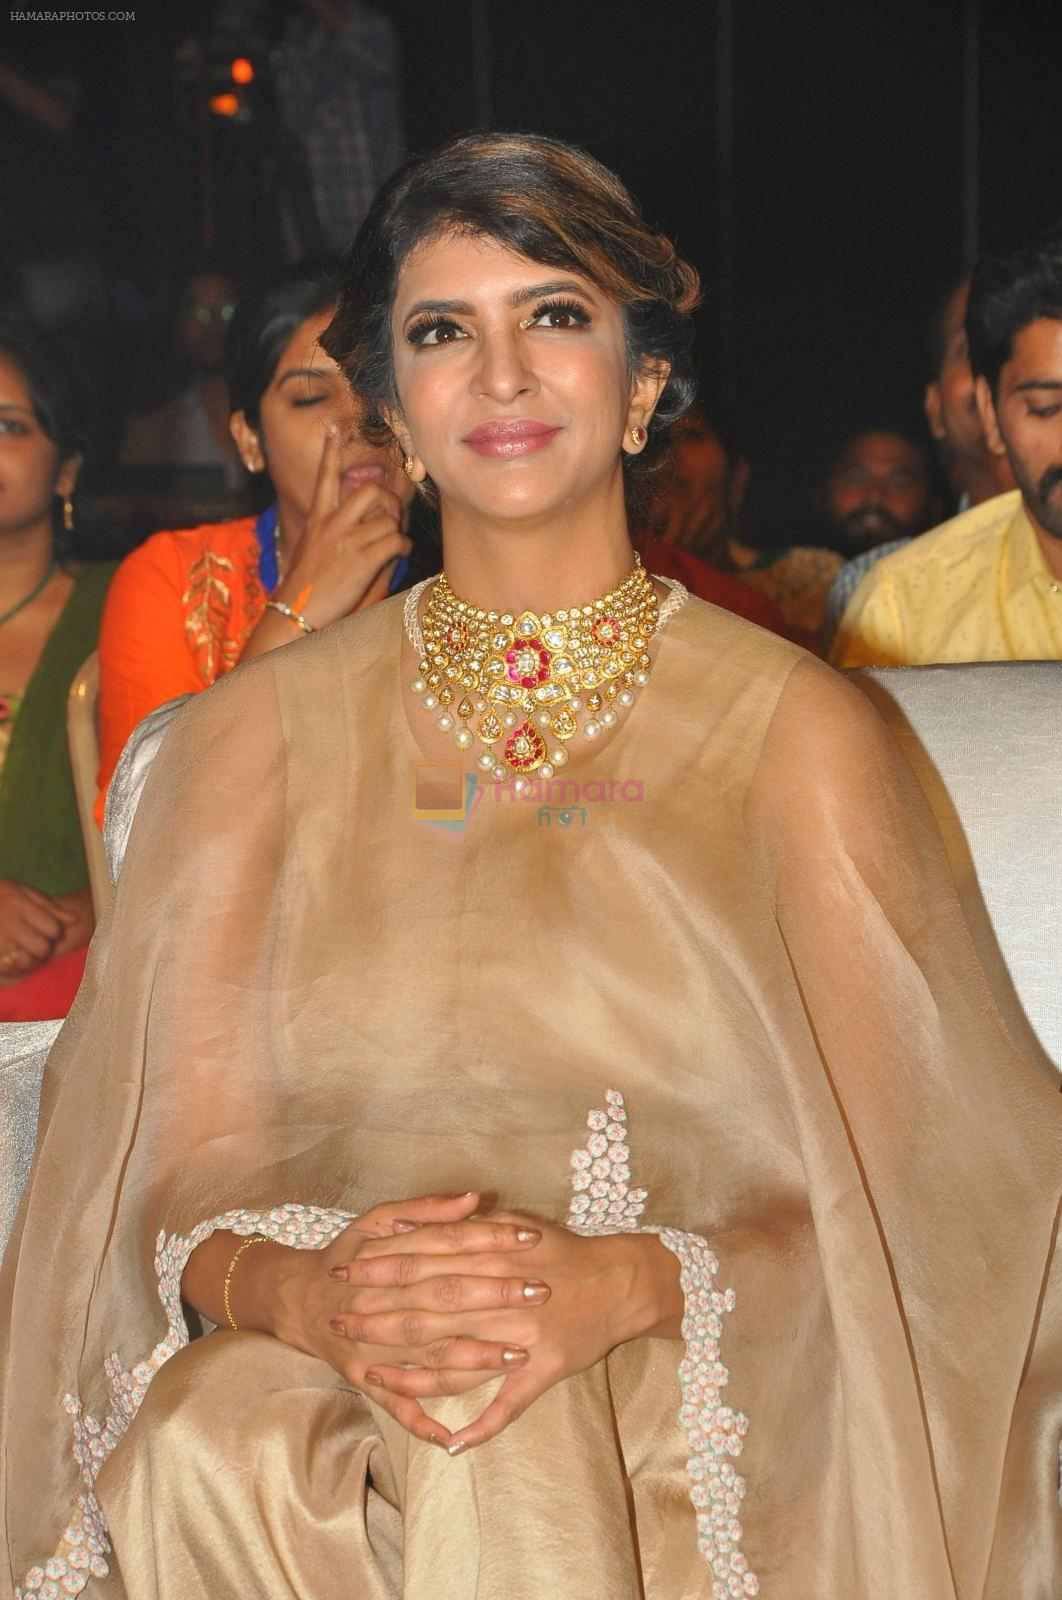 Lakshmi Manchu in Anamika Khanna and Amrapali jewels at Lakshmi Bomba audio launch